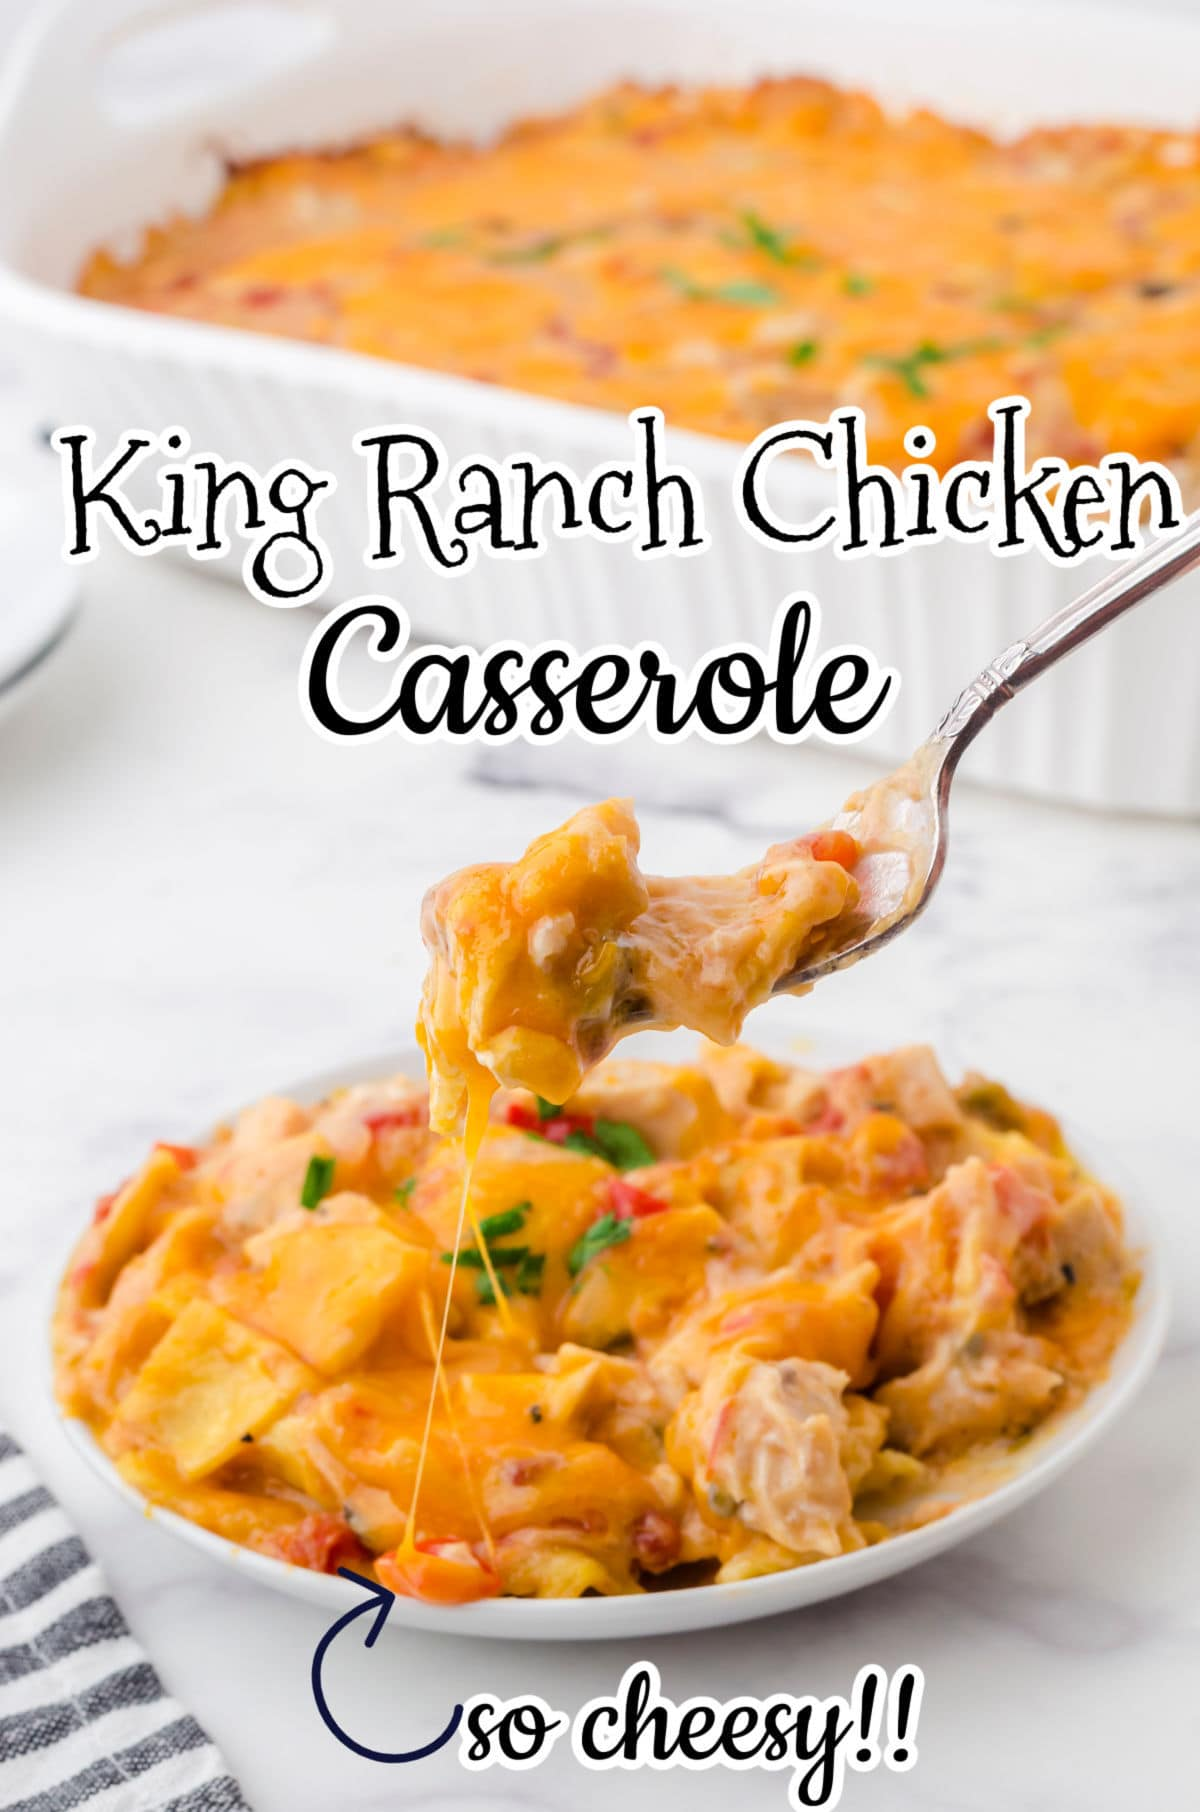 The title image for king ranch chicken with text overlay. A serving of this recipe on a plate with a forkful being lifted up.